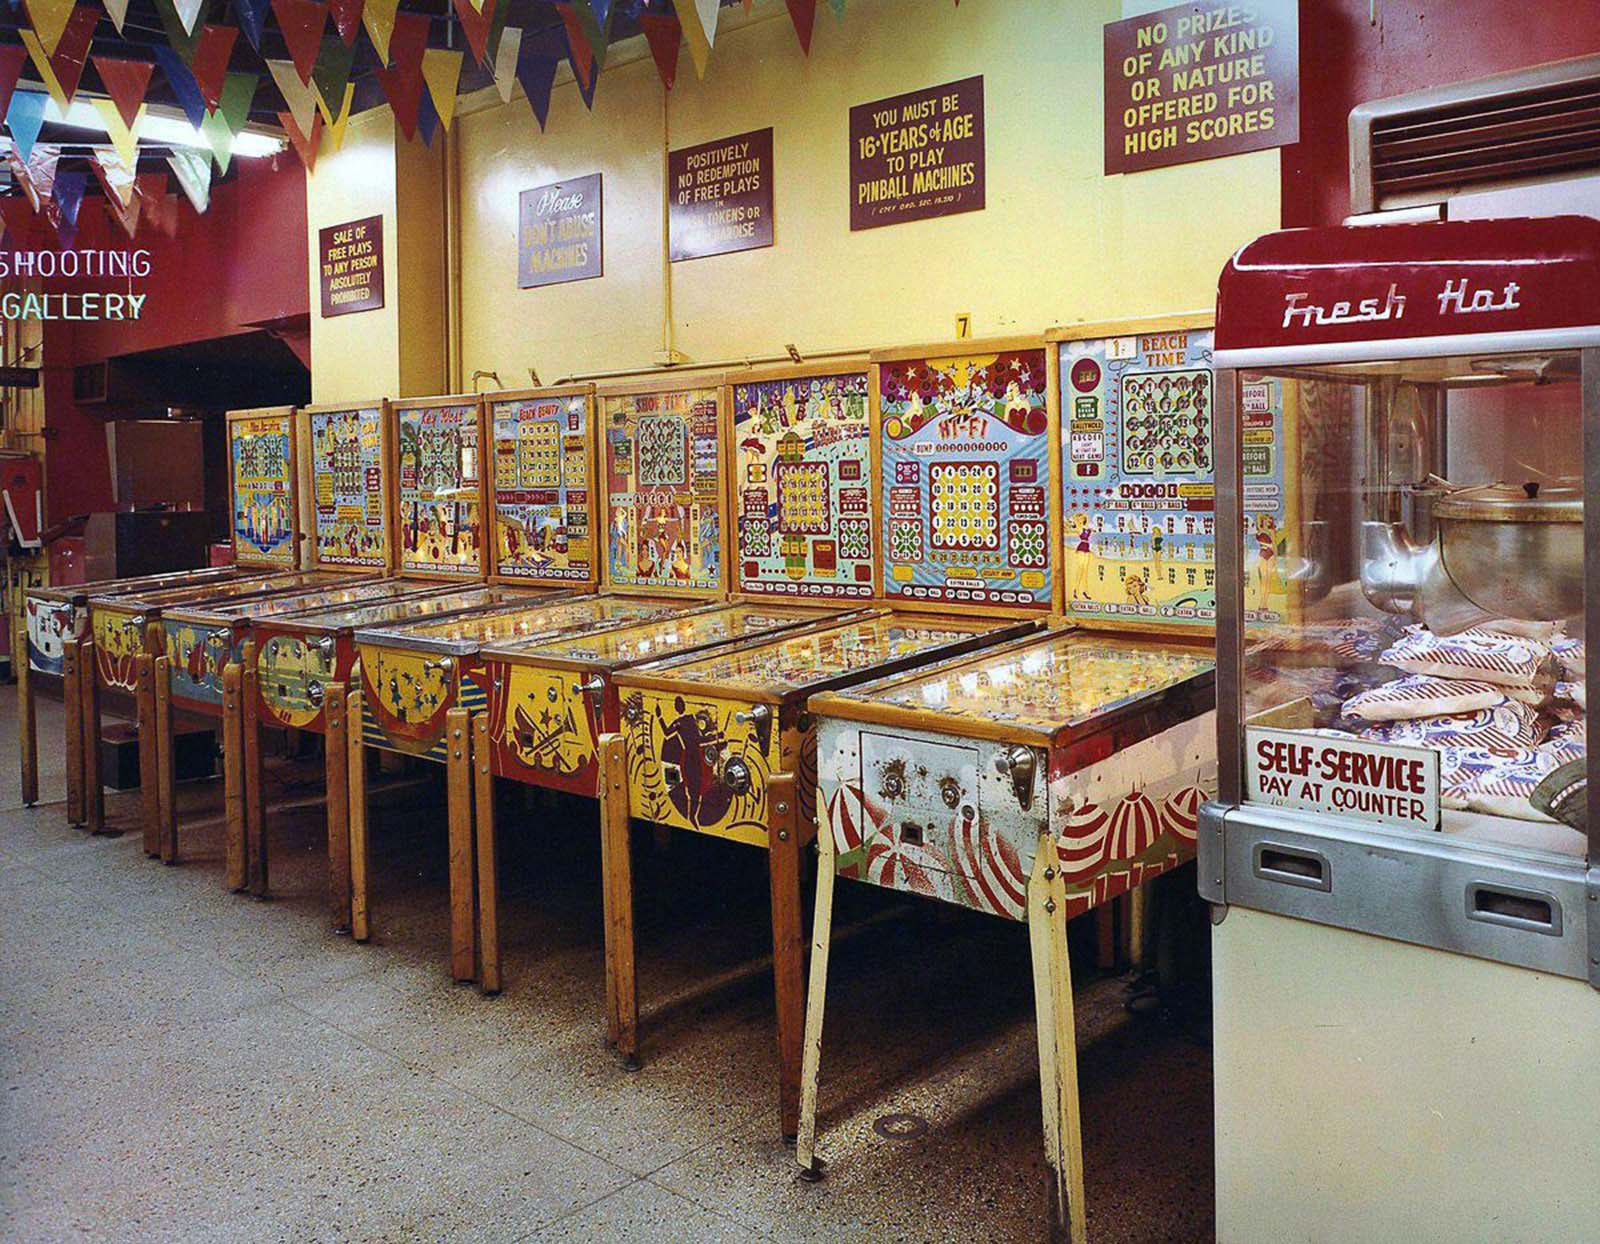 The famous Pin Ball machines.